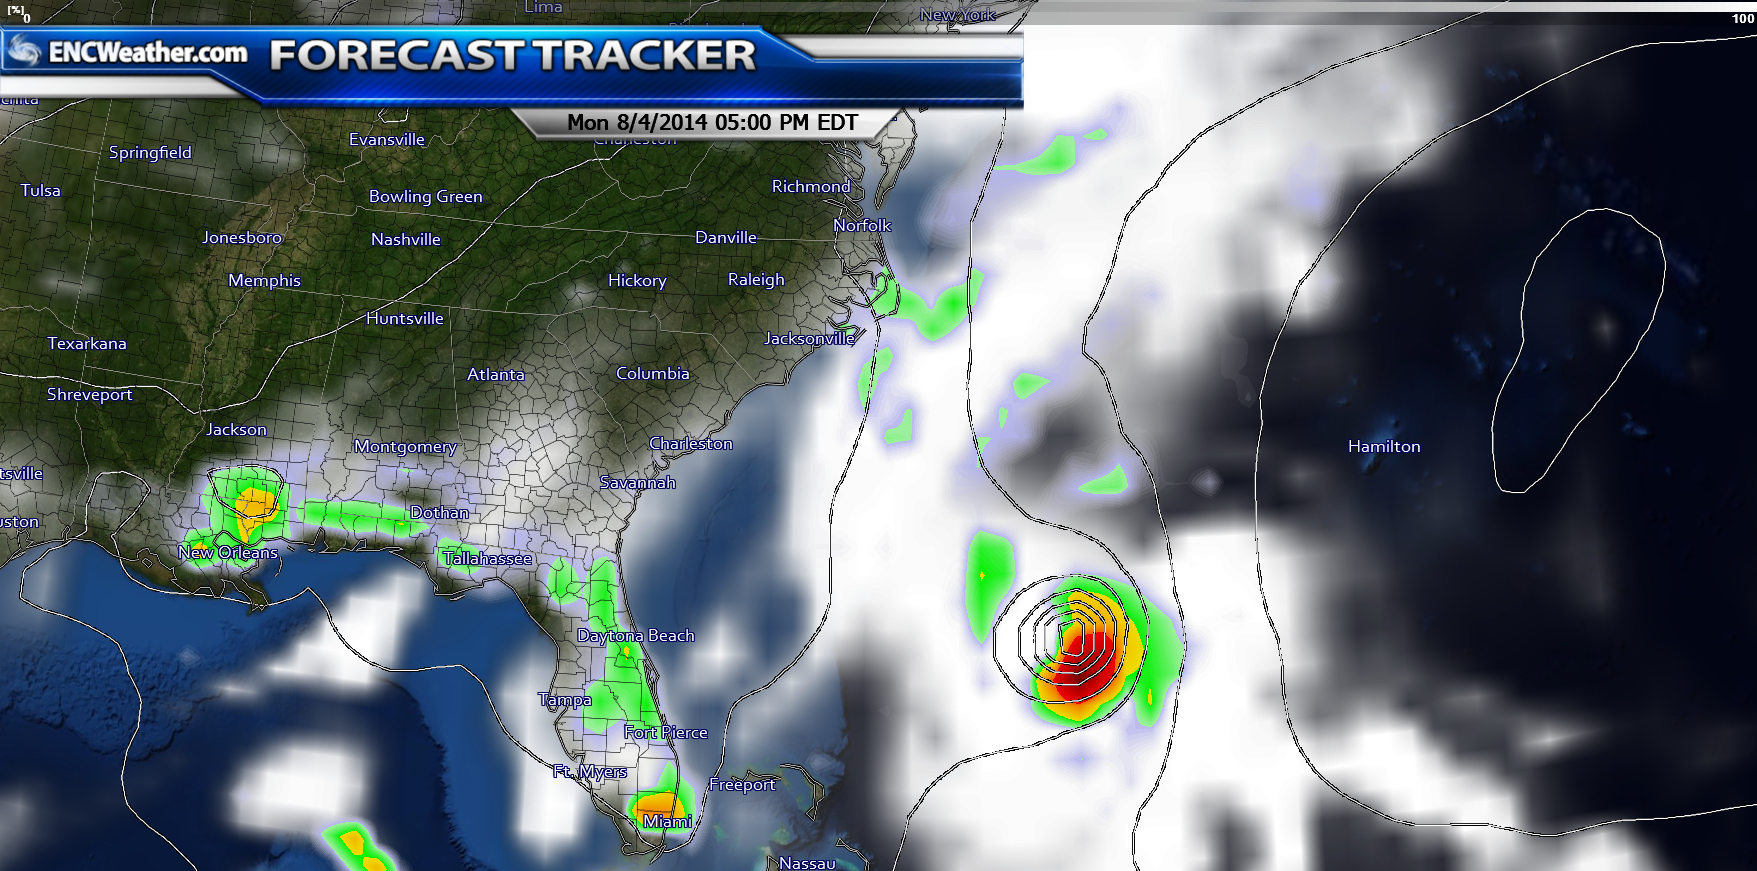 GFS forecast model shows Bertha regaining strength as it travels over the warmer waters of the Atlantic Ocean.